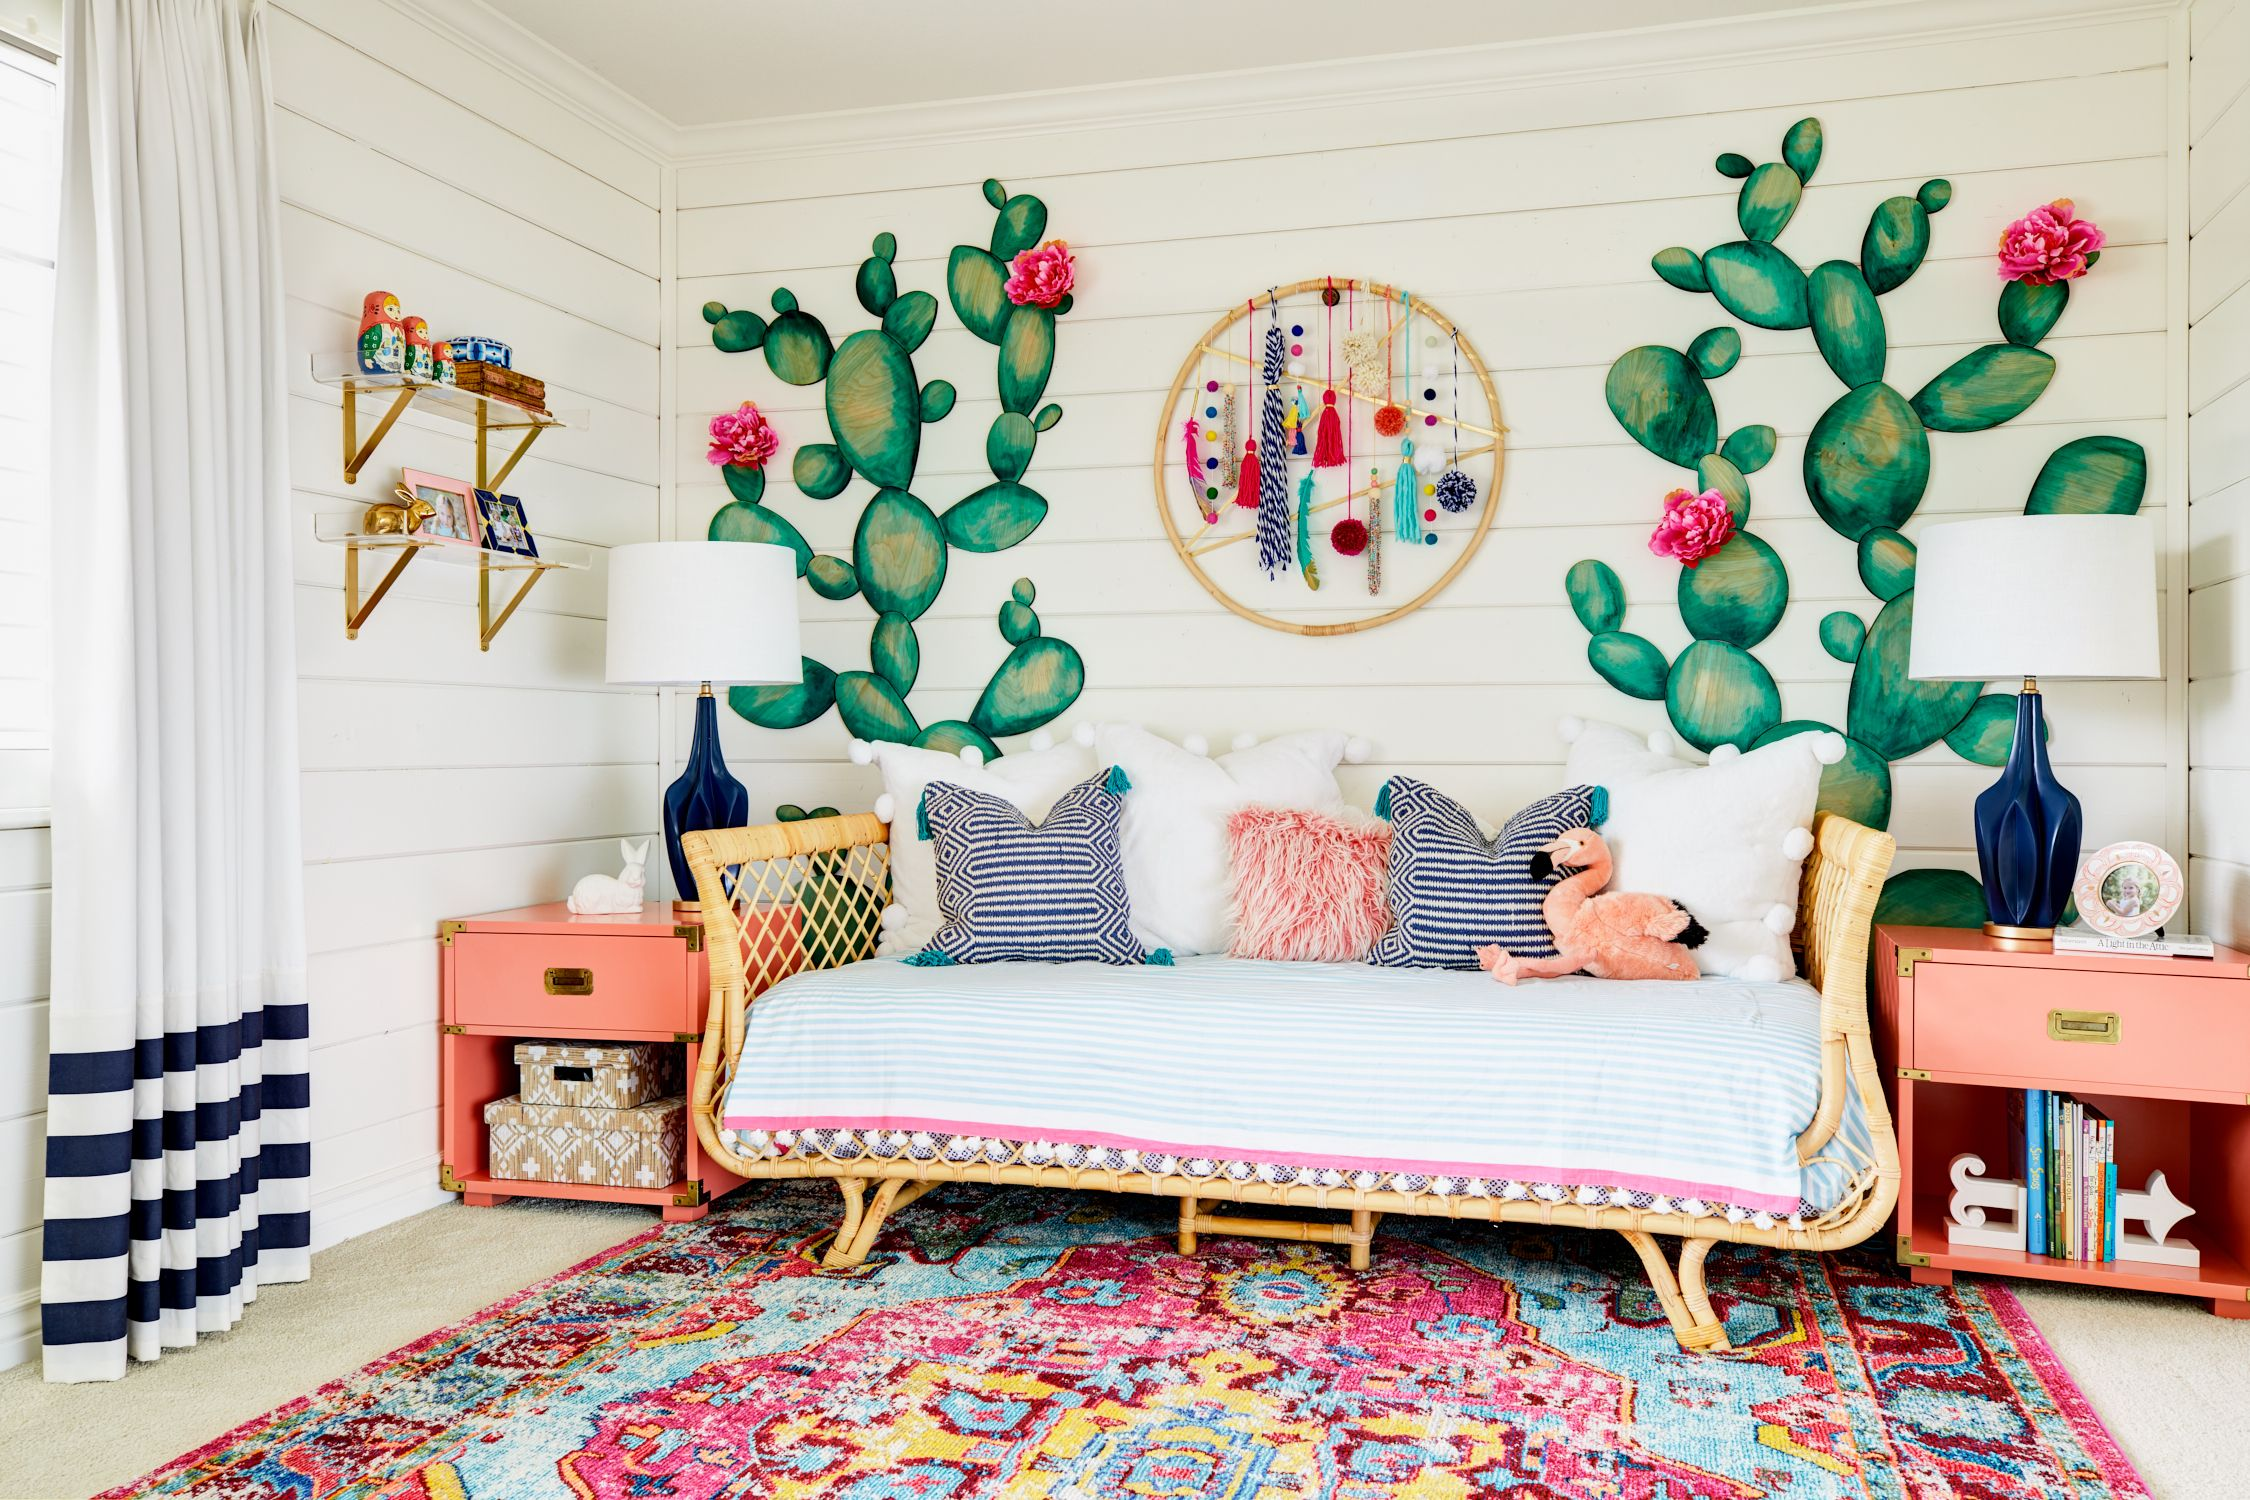 Boho Girlu0027s Room With Cactus Accent Wall And Modern Colorful Dreamcatcher